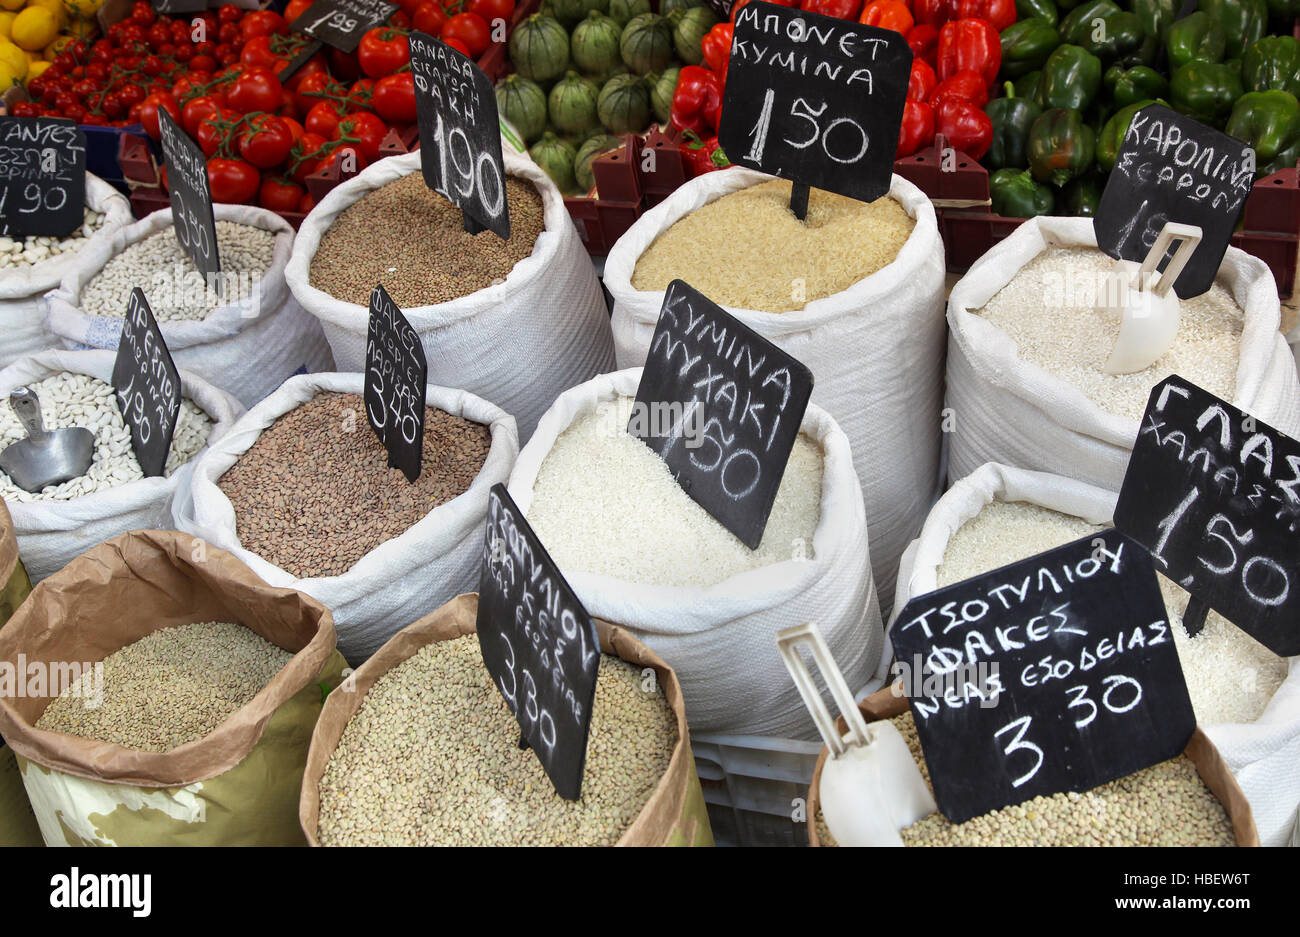 Grains sacks Stock Photo